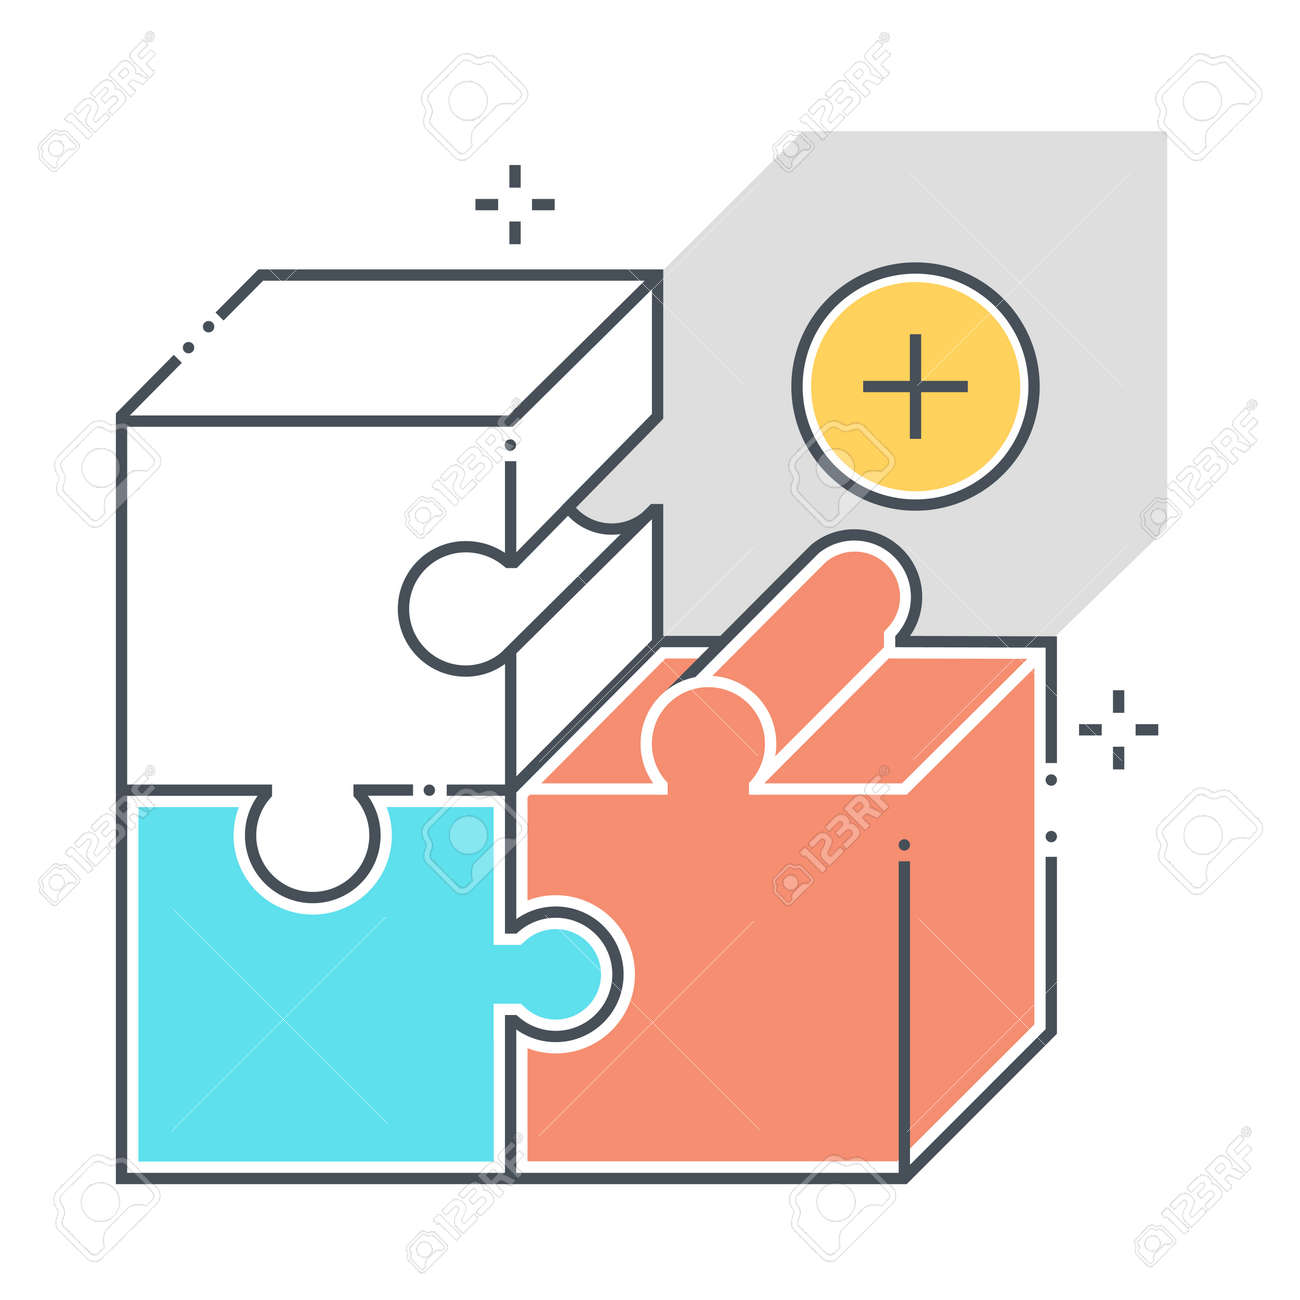 Product related color line vector icon, illustration. The icon is about market, fit, jigsaw, puzzle, solving, box. The composition is infinitely scalable. - 163698326